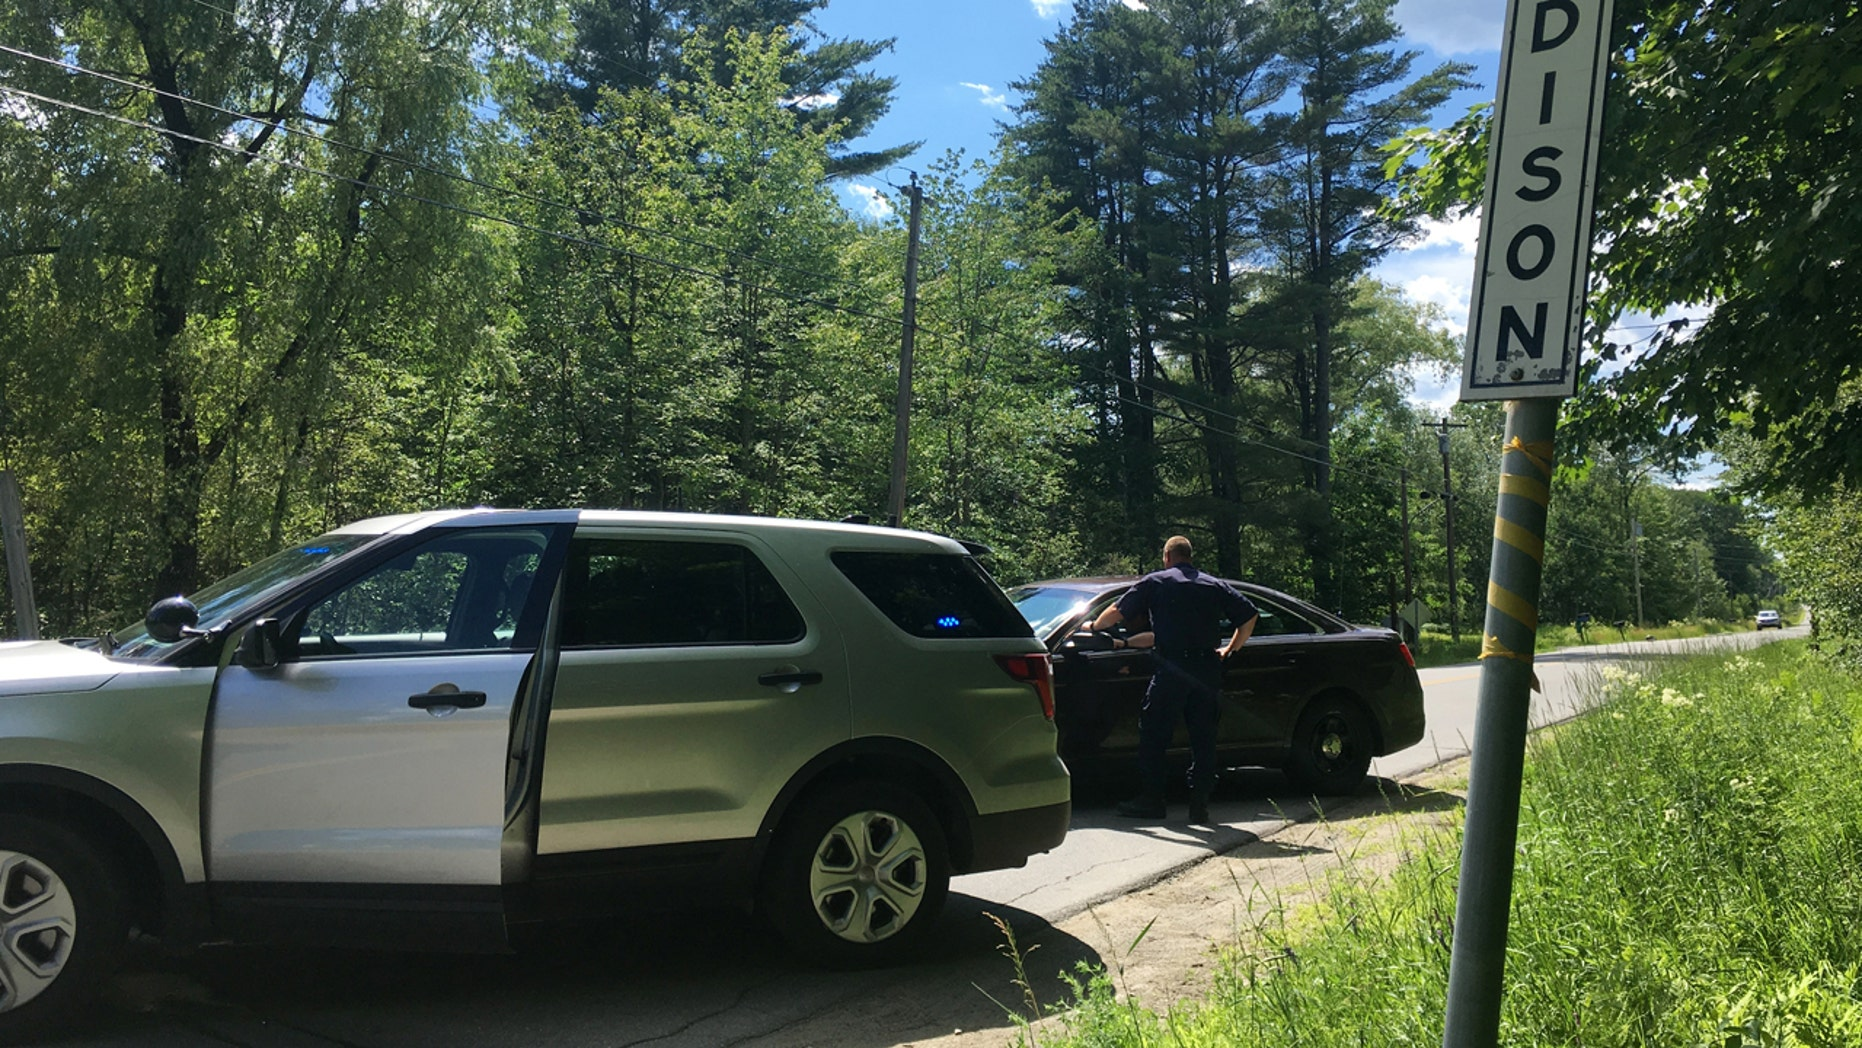 State police in Madison, Maine, have closed the country road Wednesday, July 5, 2017, where a series of Wednesday shootings left three victims dead and one injured.